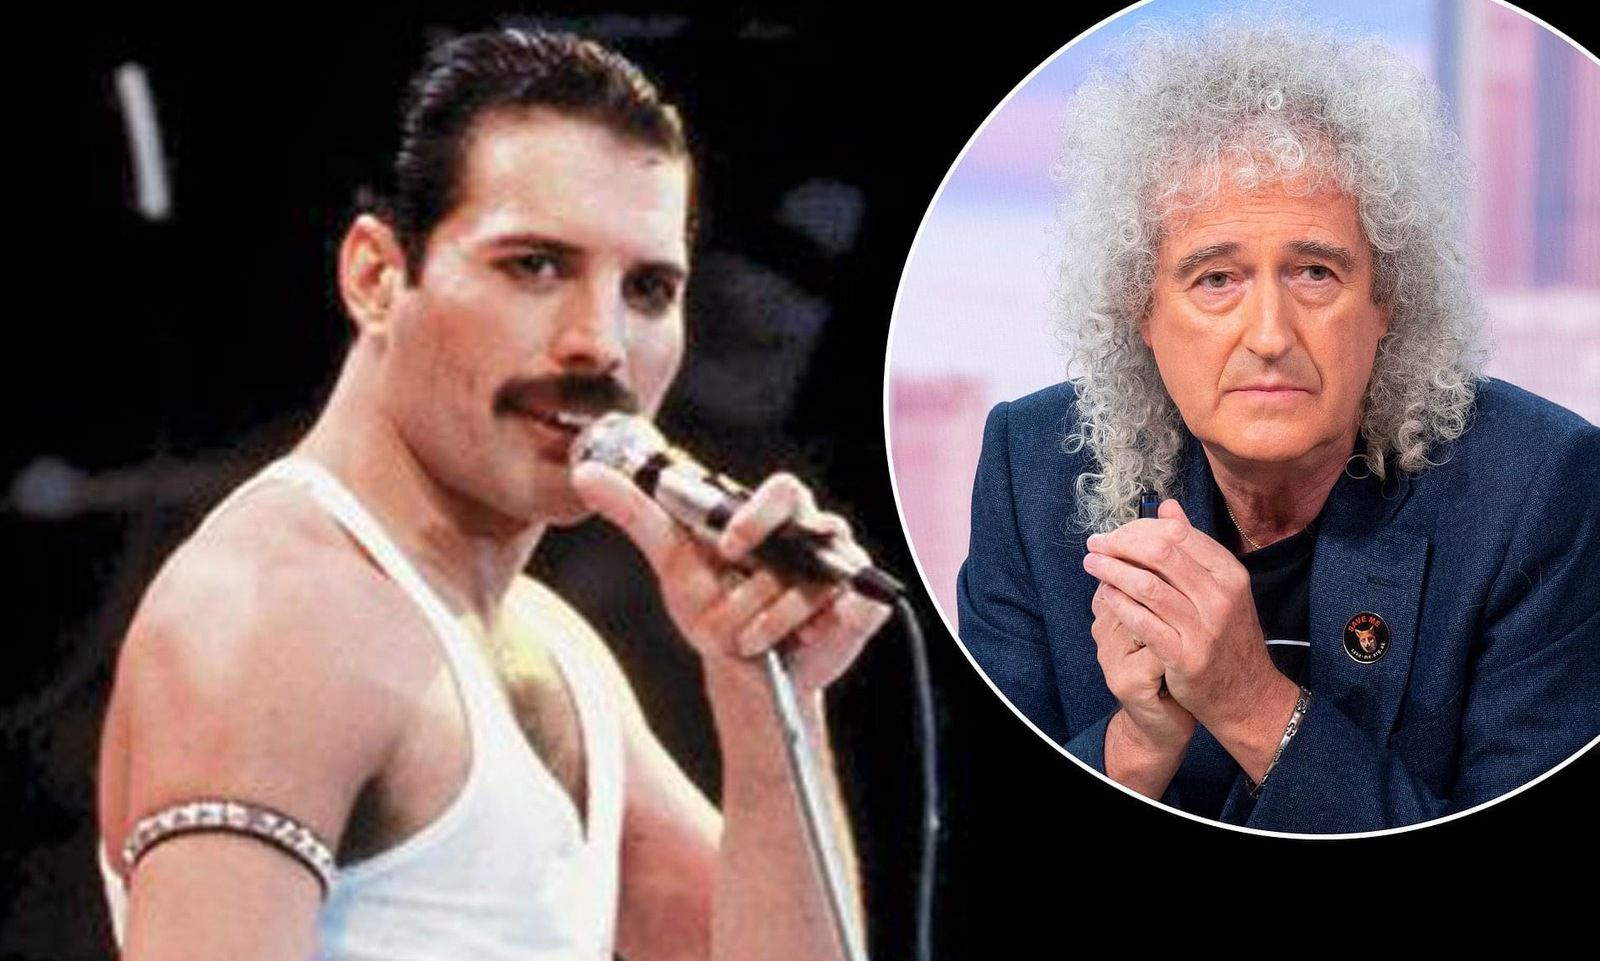 'He had massive insecurities': Brian May reflects on late Freddie Mercury's 'very private side' as he marks Queen's 50th anniversary